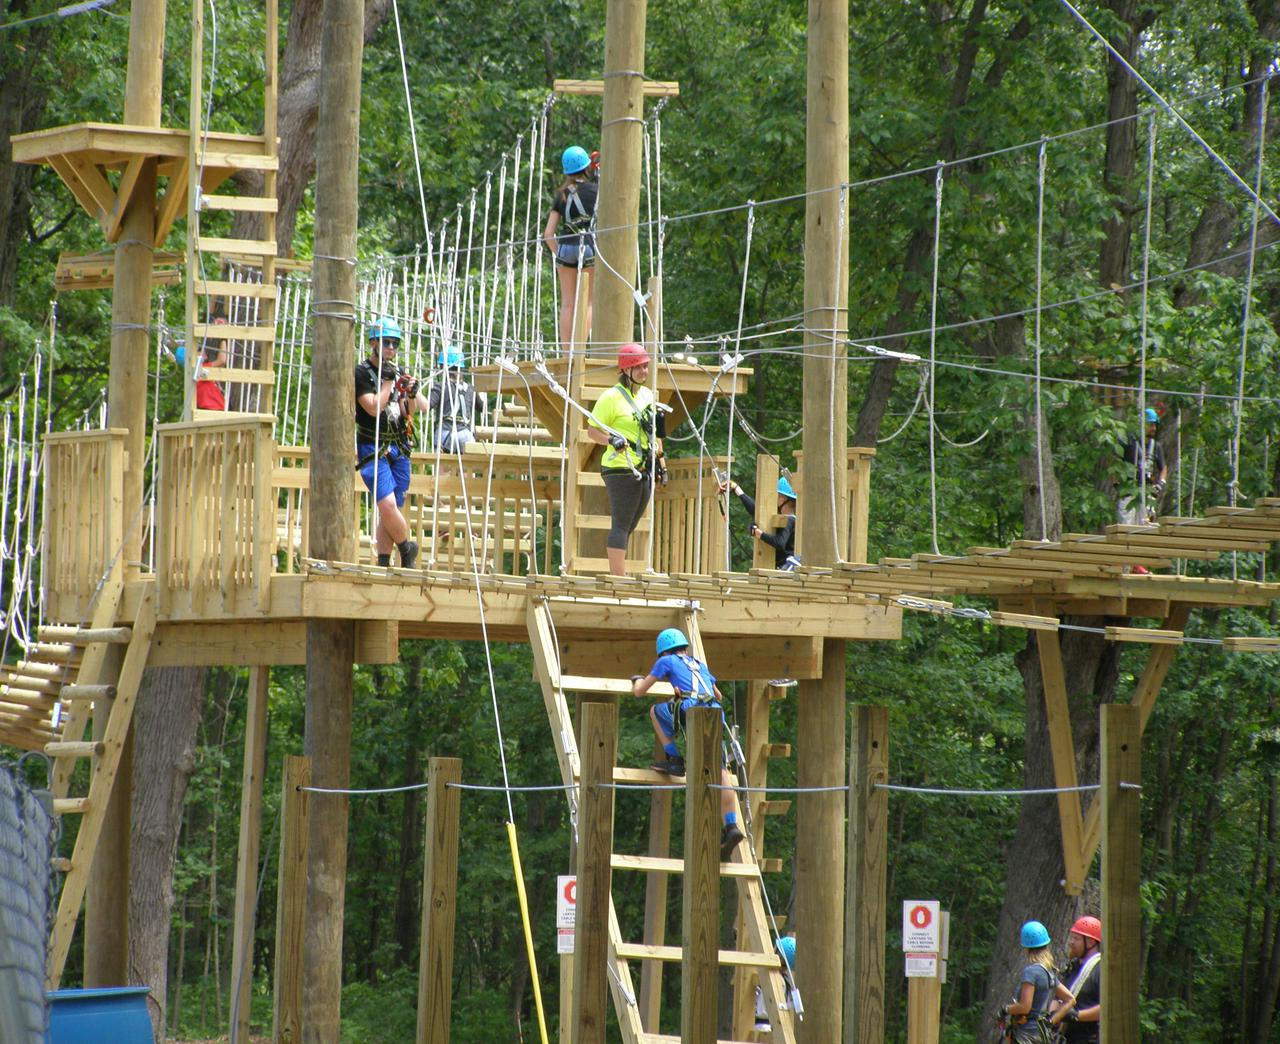 Adventure Park Center Deck